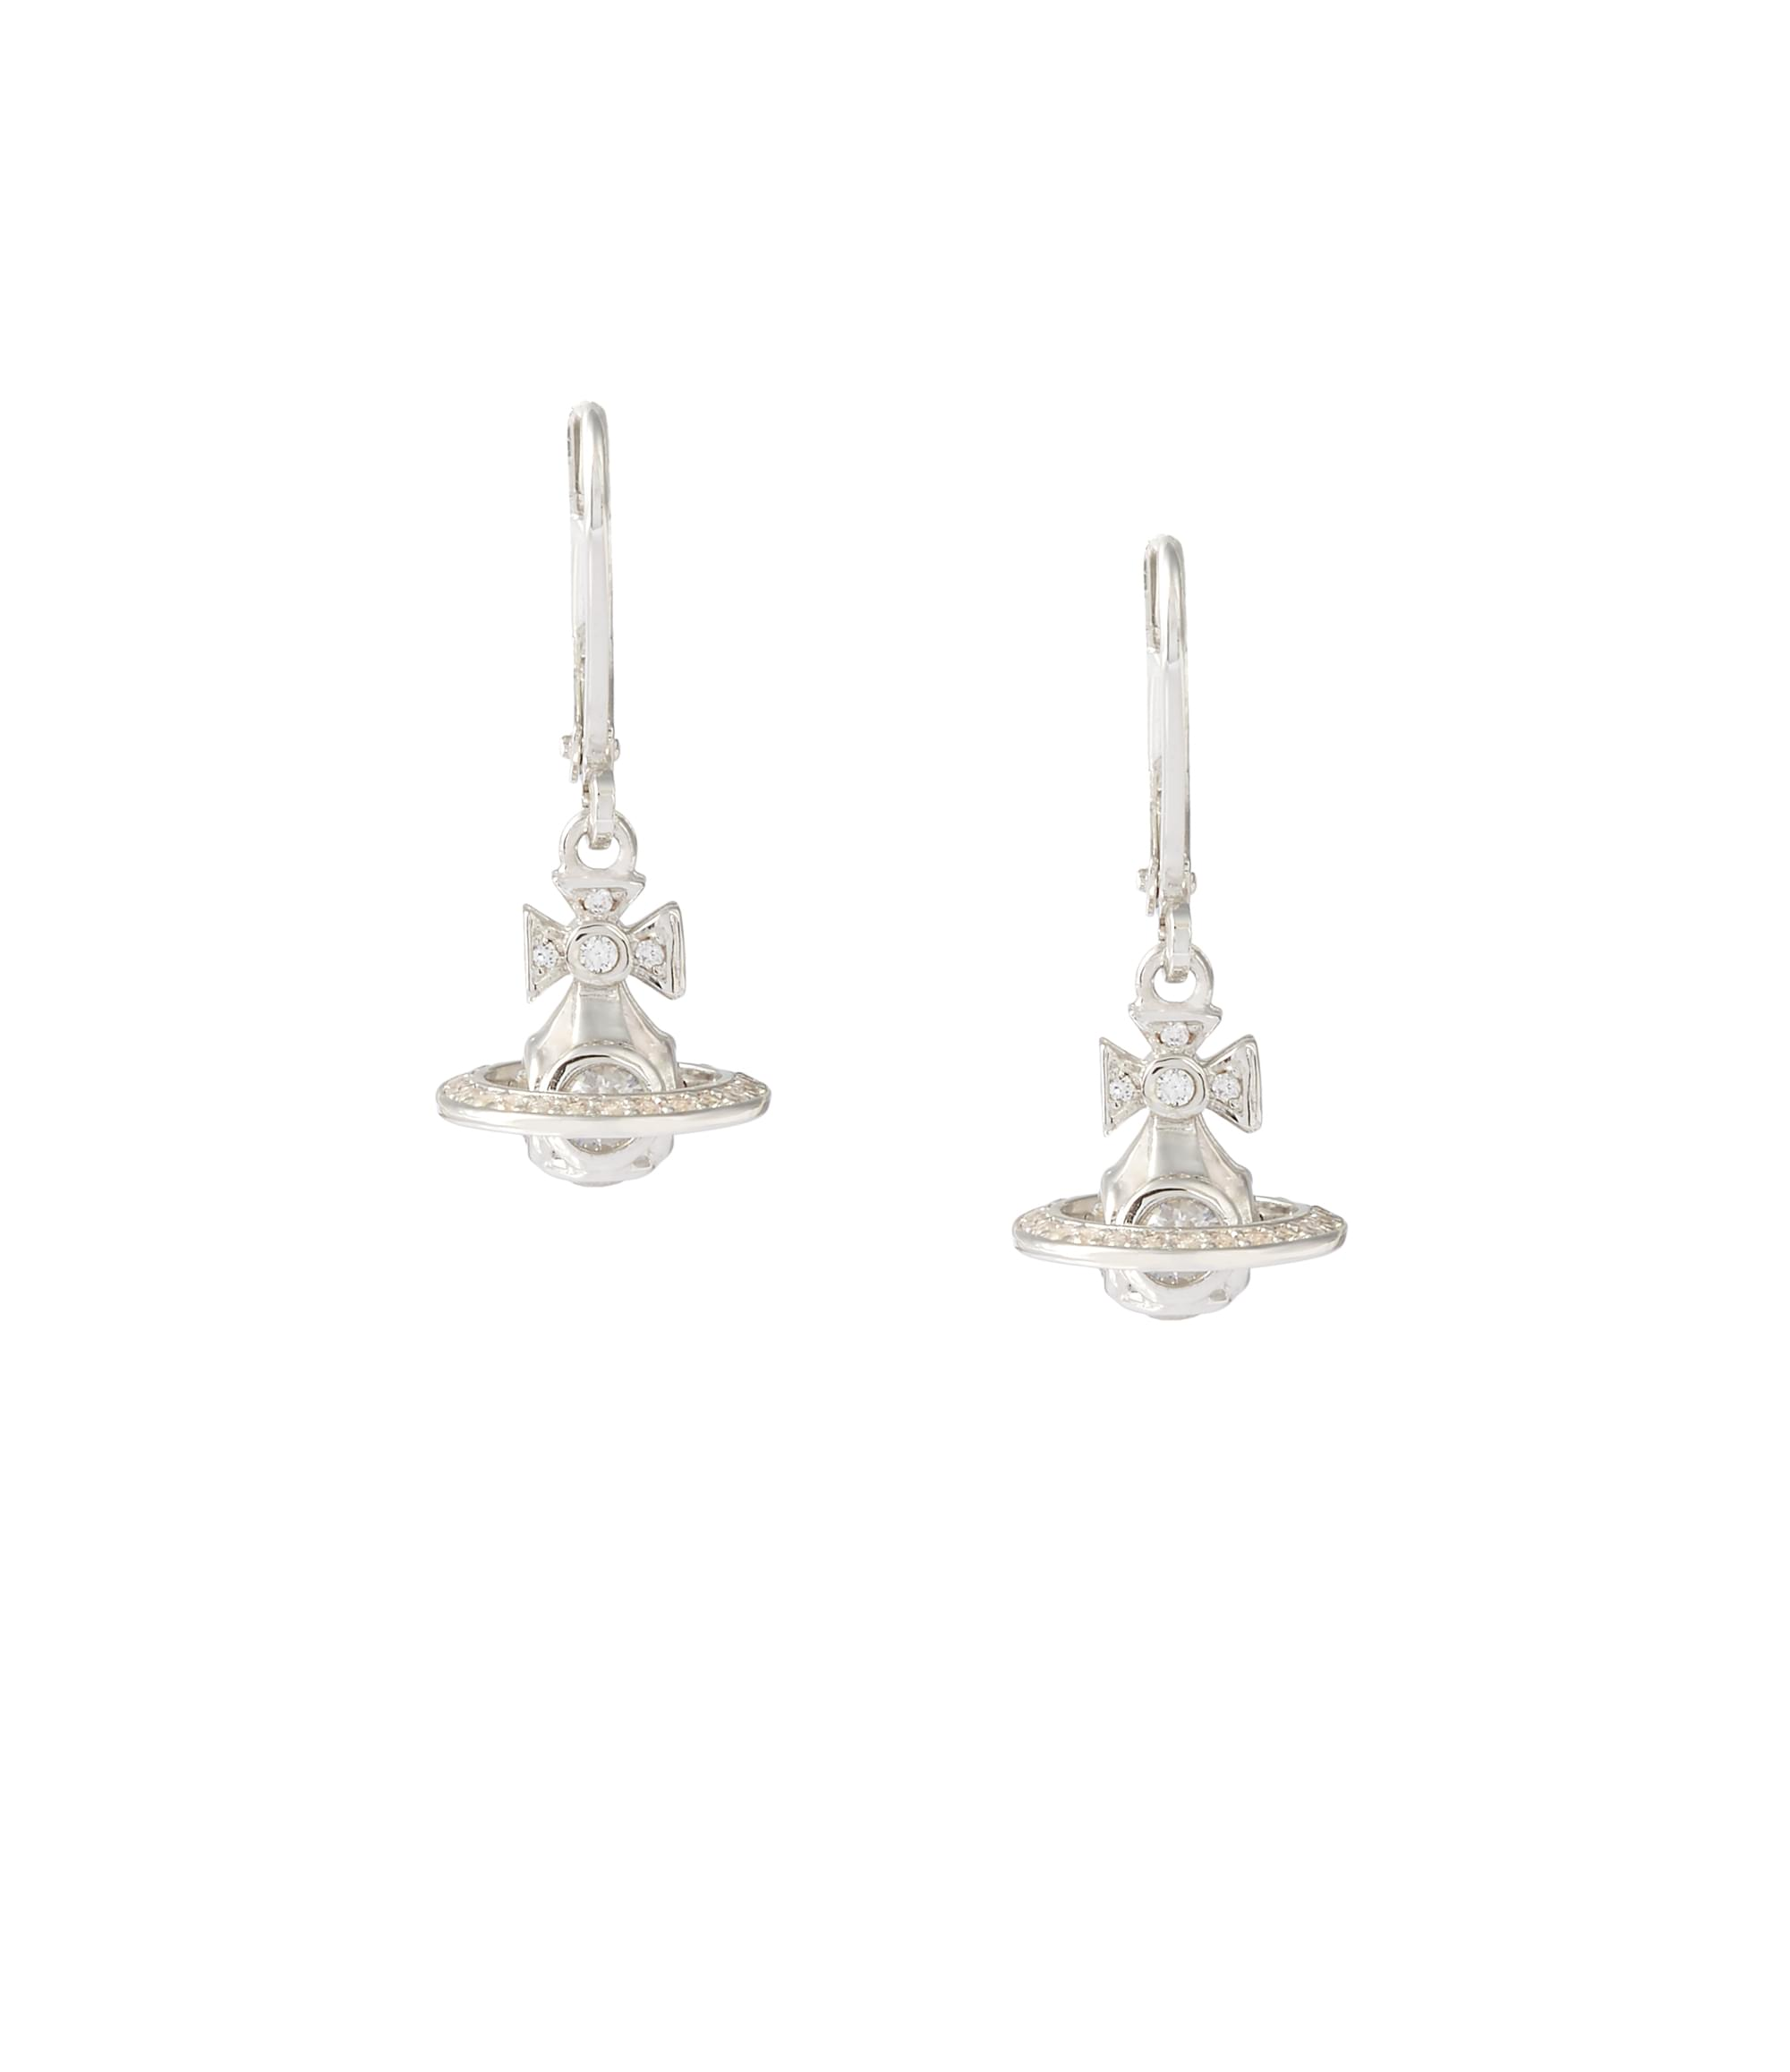 Vivienne Westwood Nicolette Orb Earrings